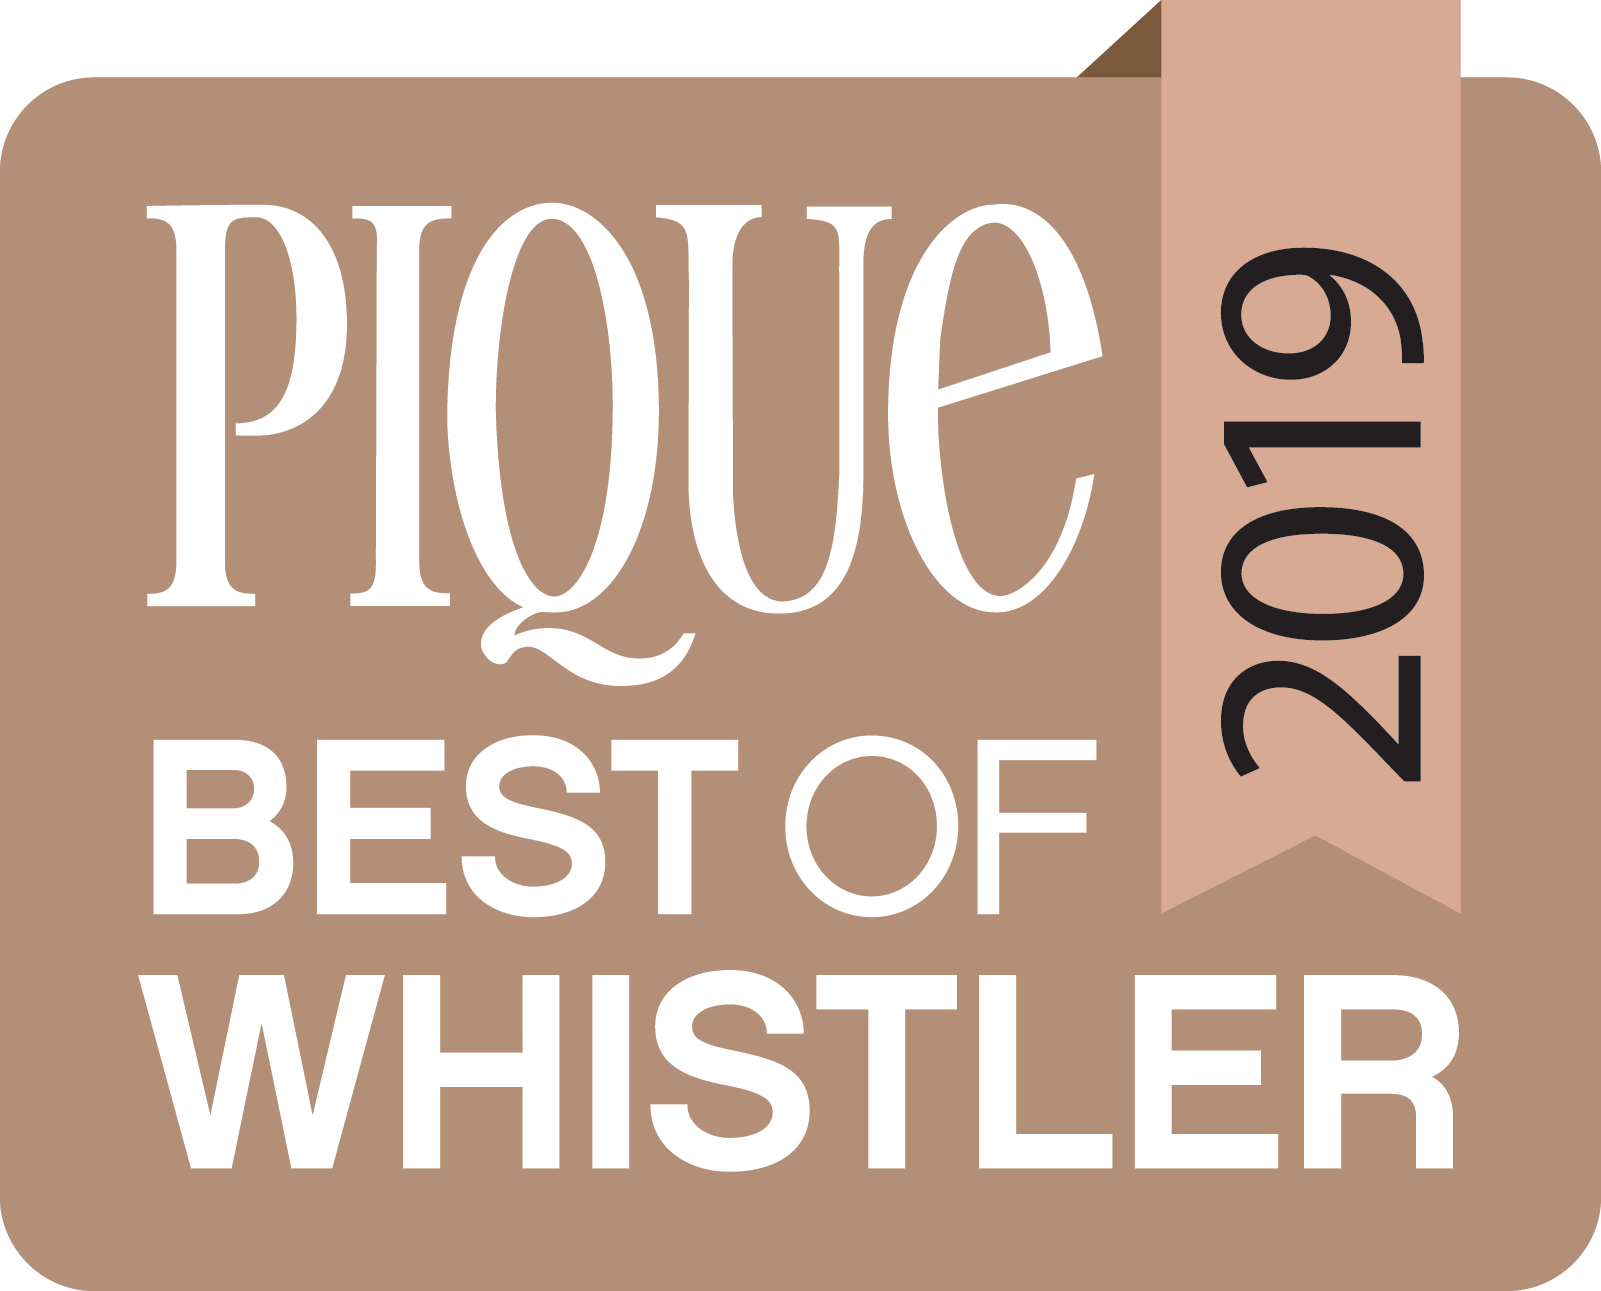 Pique Best of Whistler 2019